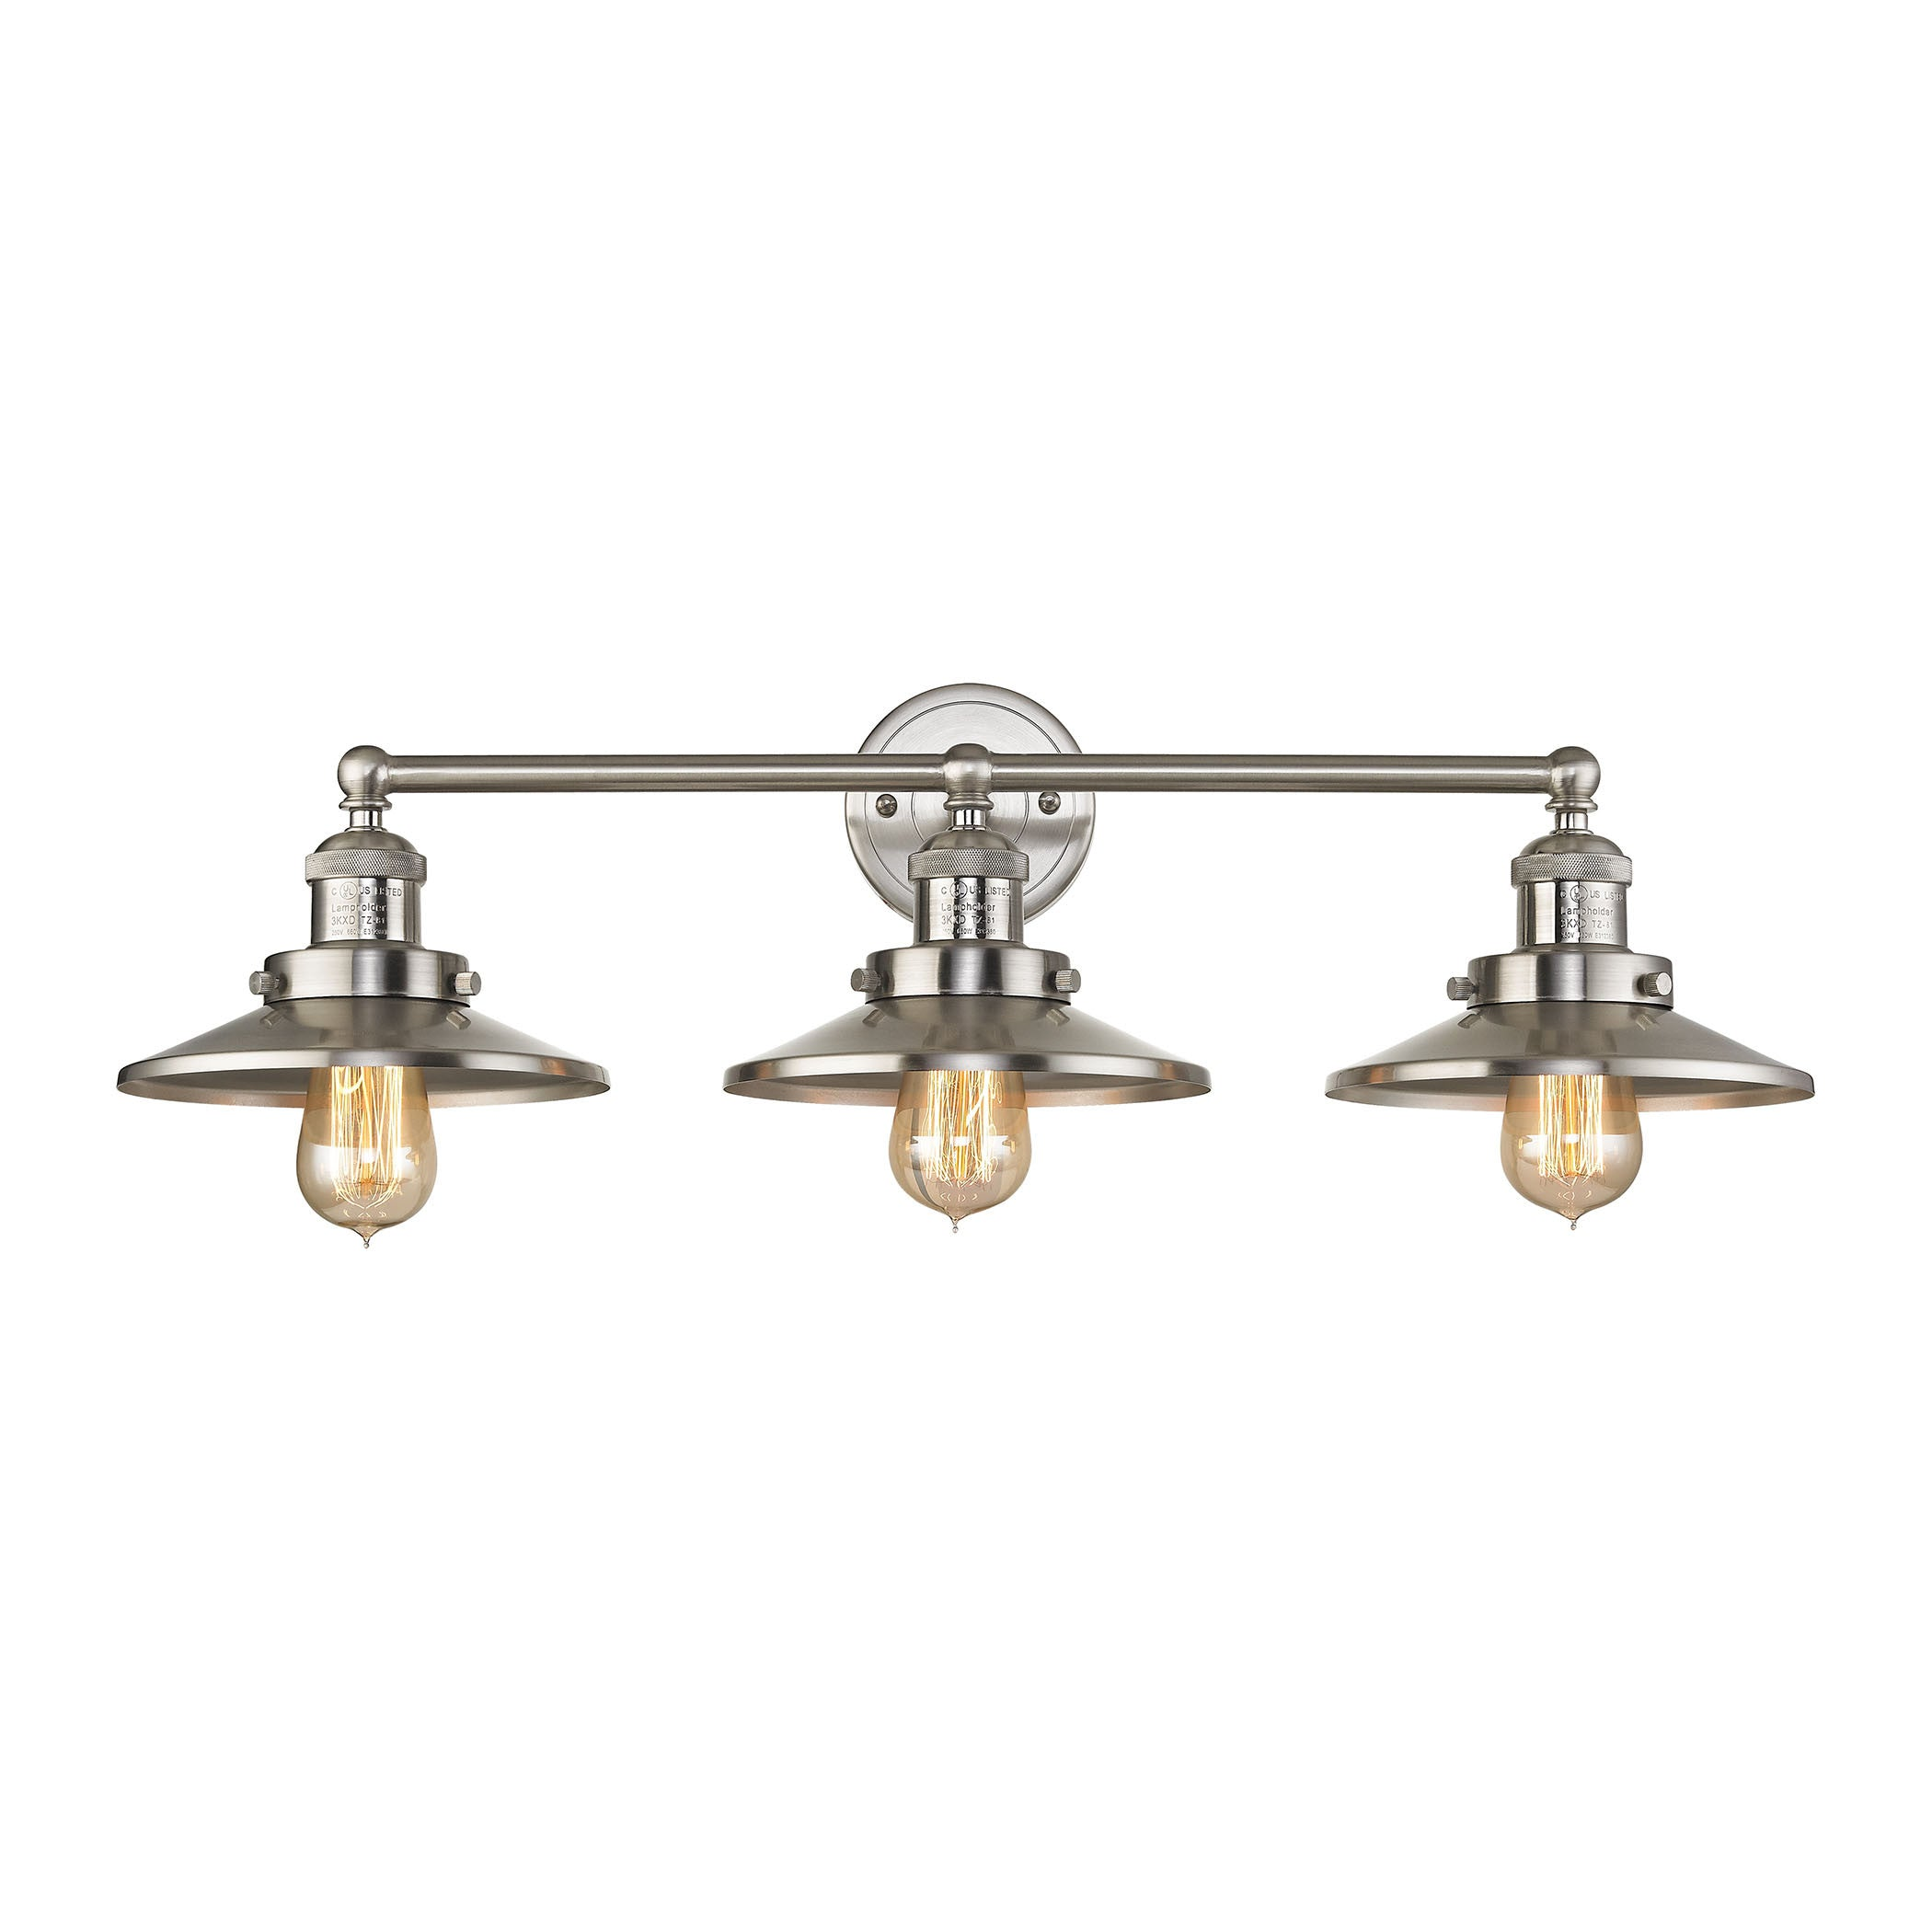 English Pub 3 Light Vanity in Satin Nickel Finish, by ELK Lighting, 67172/3